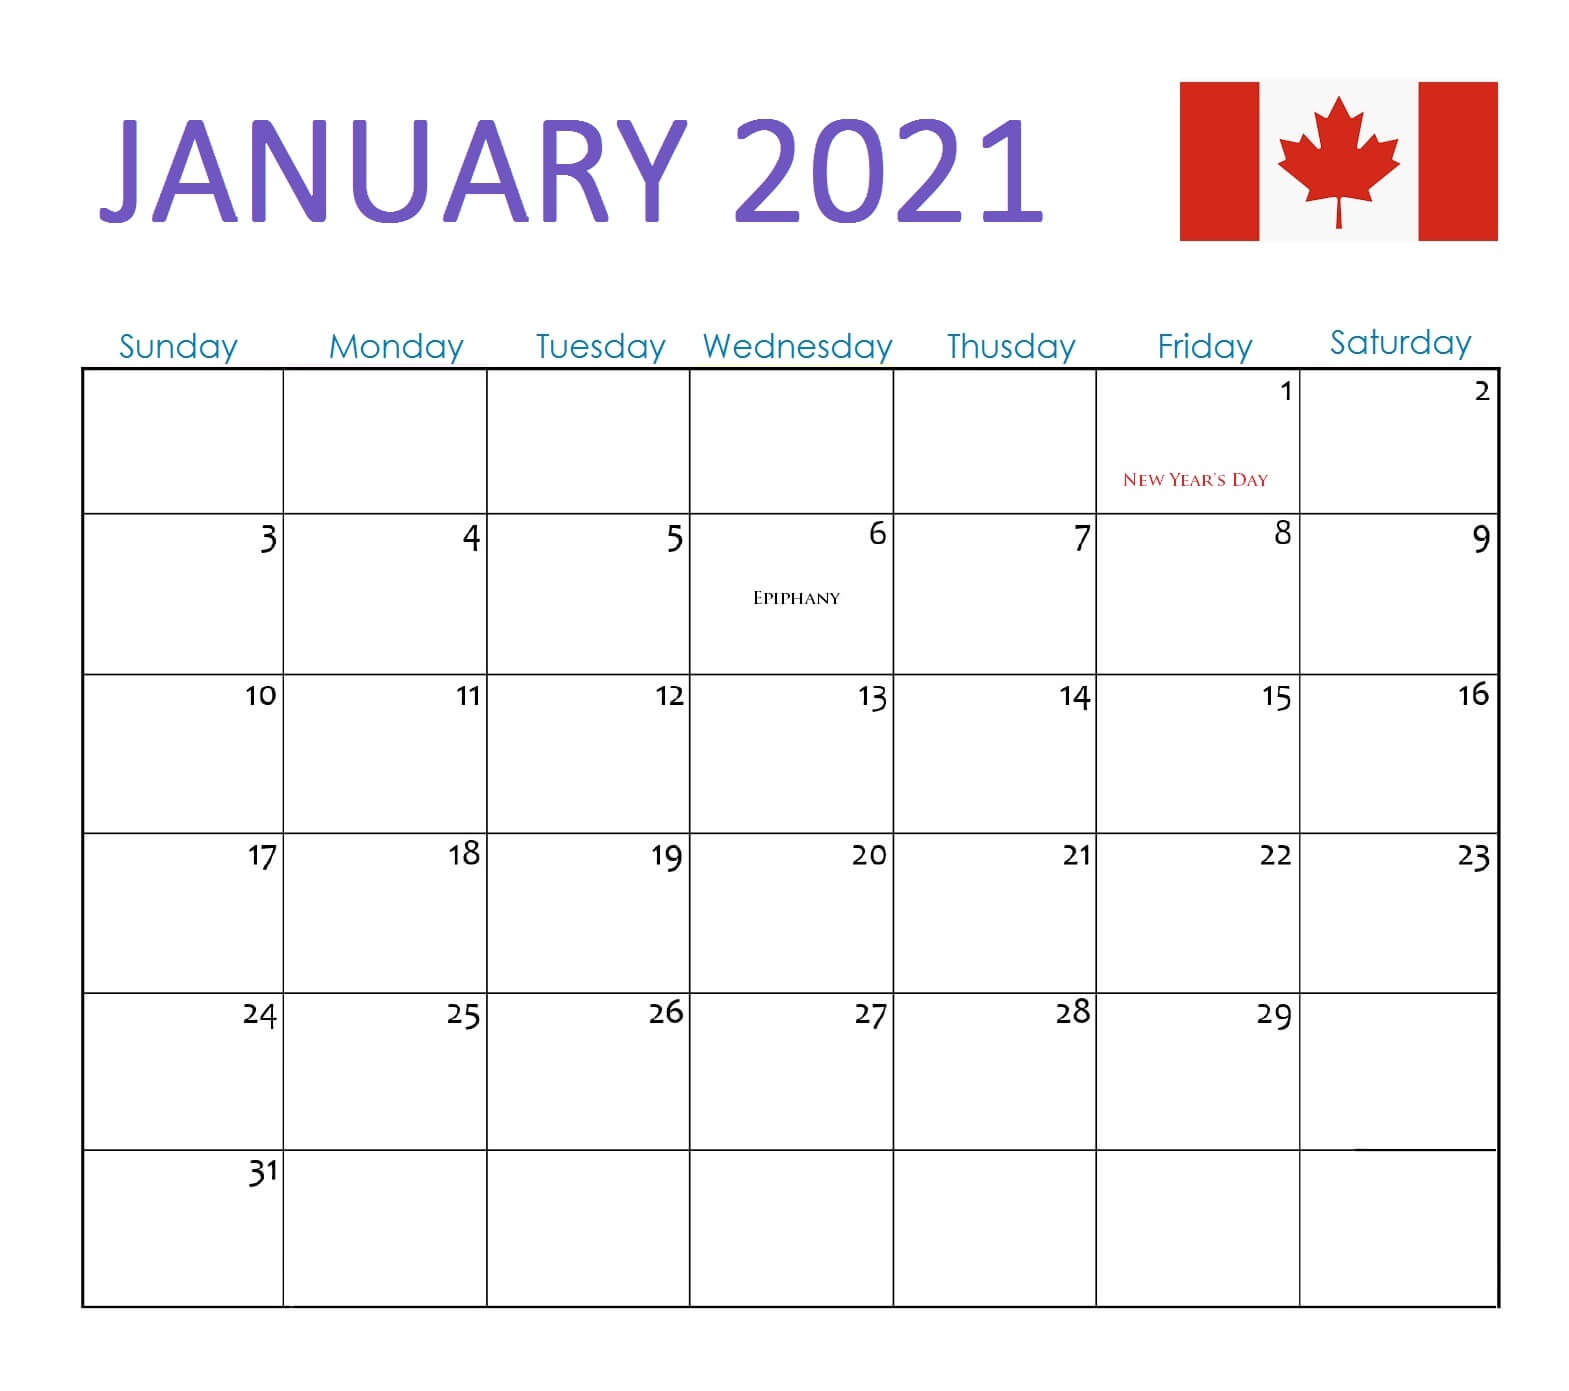 January 2021 Calendar Canada with Holidays